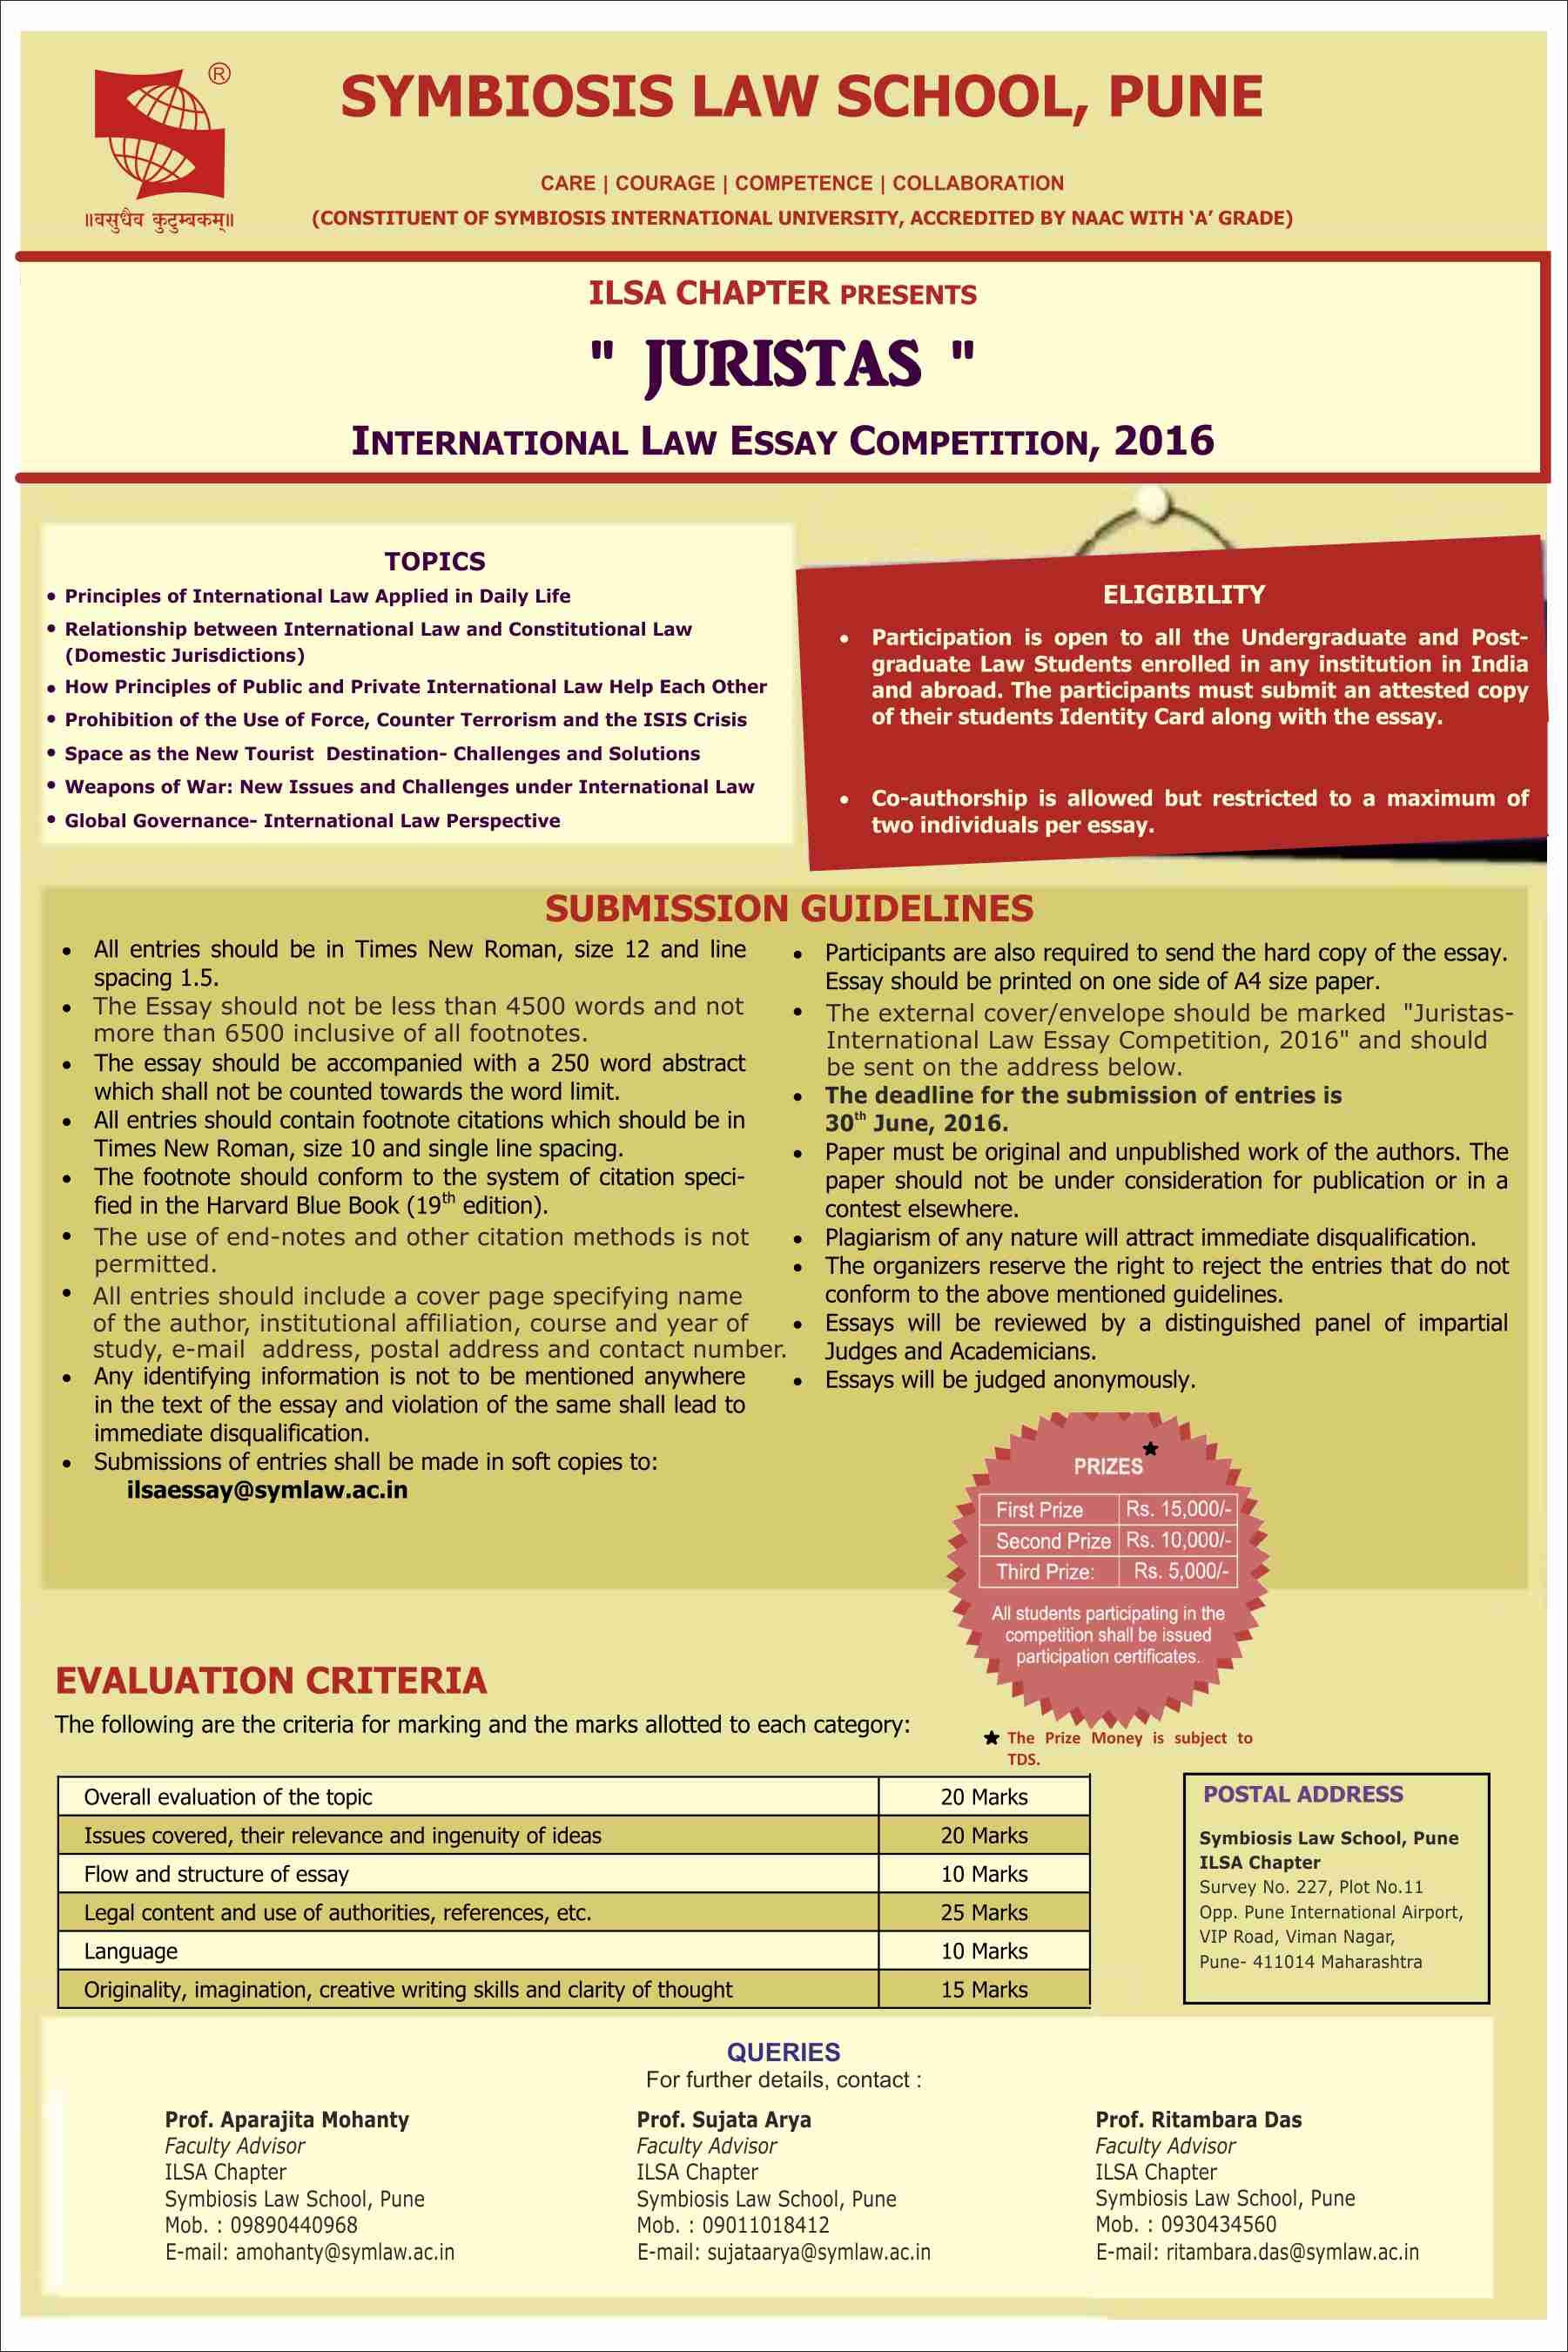 essay competitions archives page 4 of 14  sls pune s juristas international law essay competition 2016 submit by 30 prizes worth rs 30 000